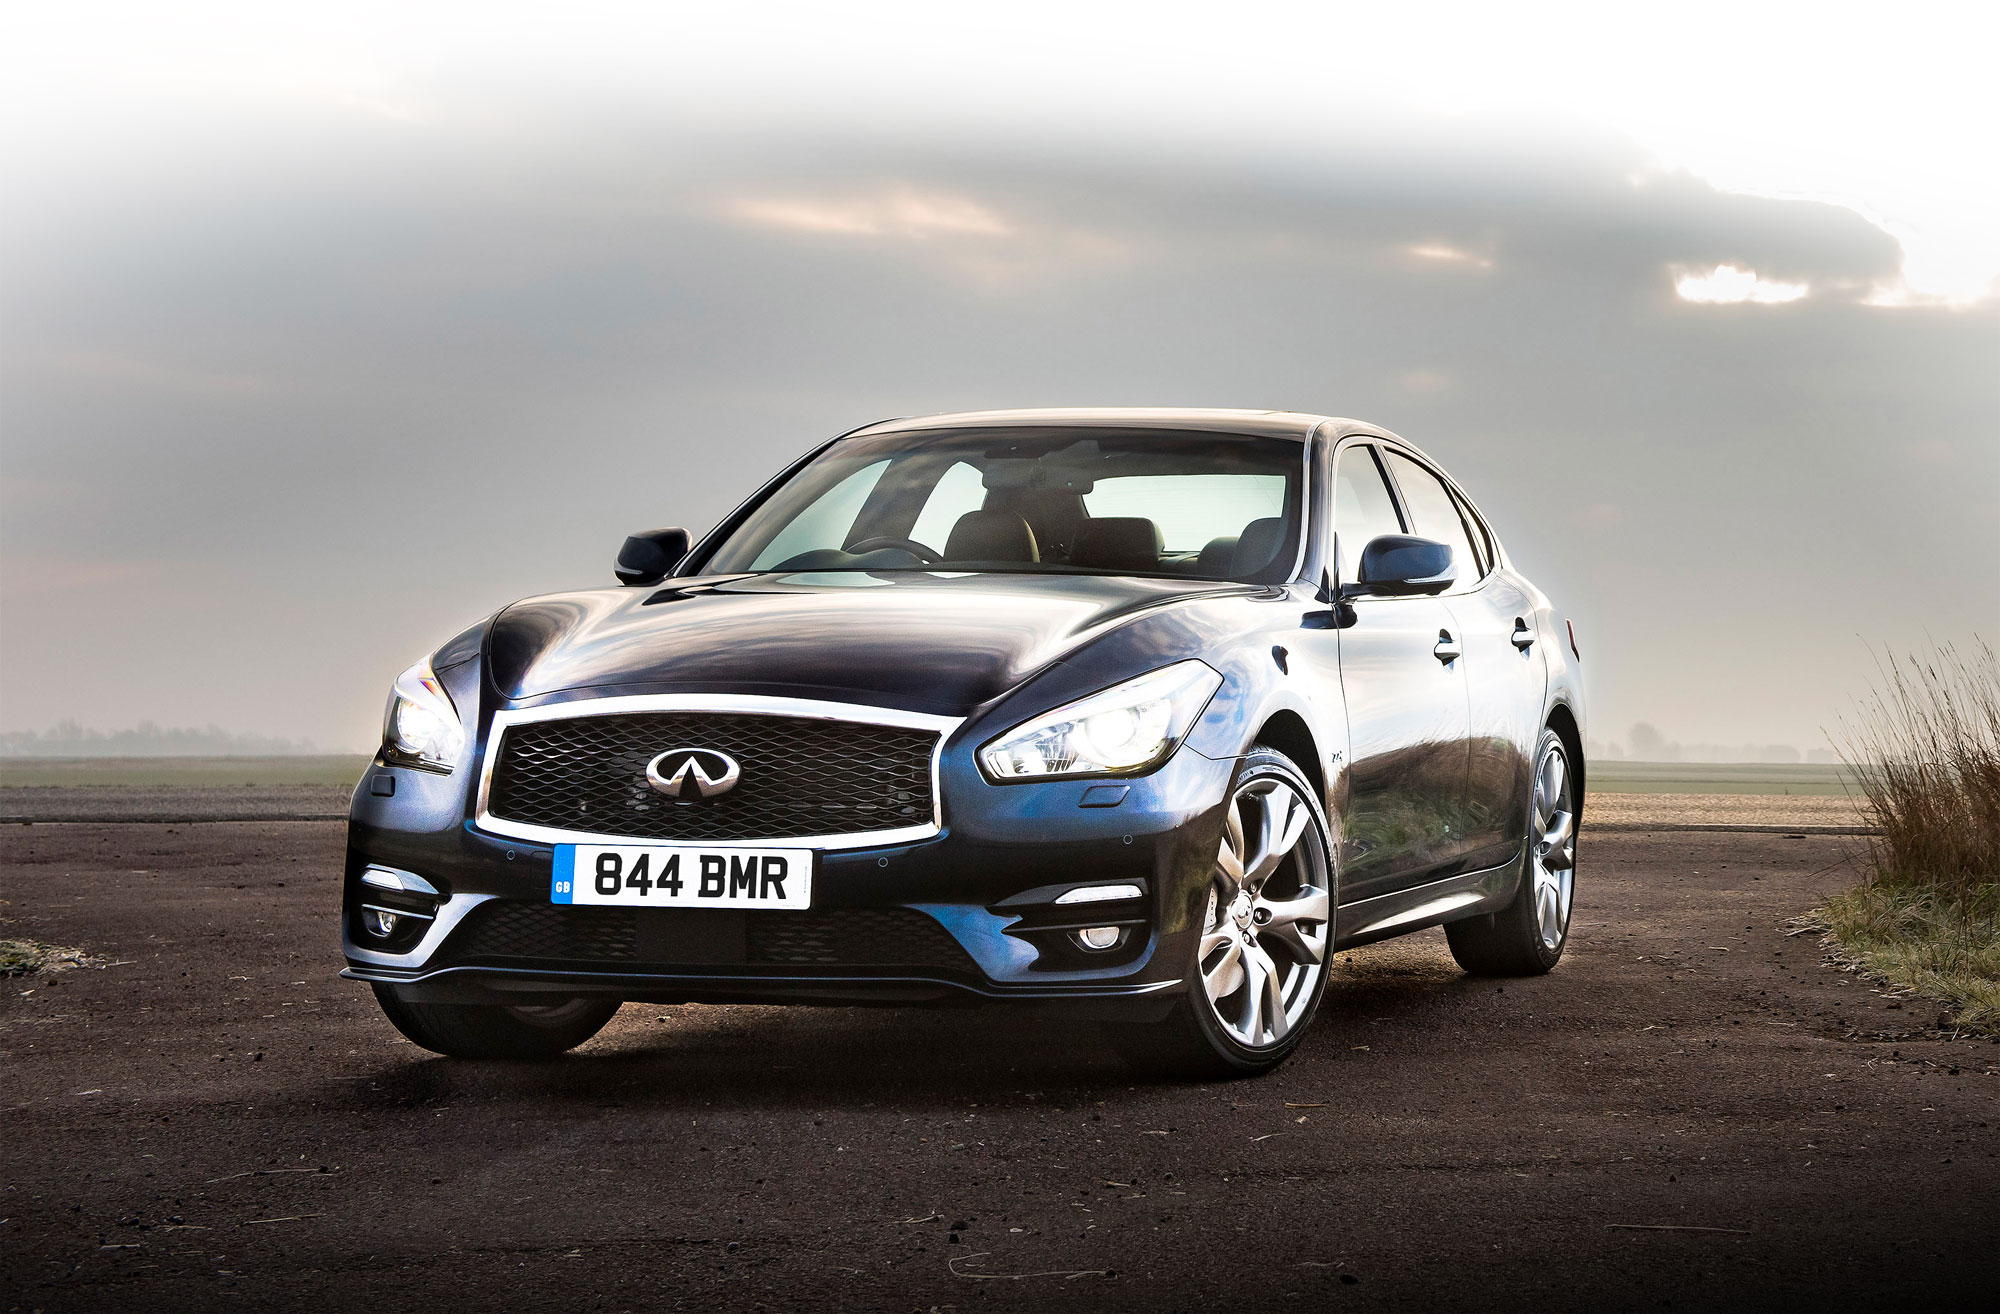 Luxurious Magazine Road Tests The Infiniti Q70